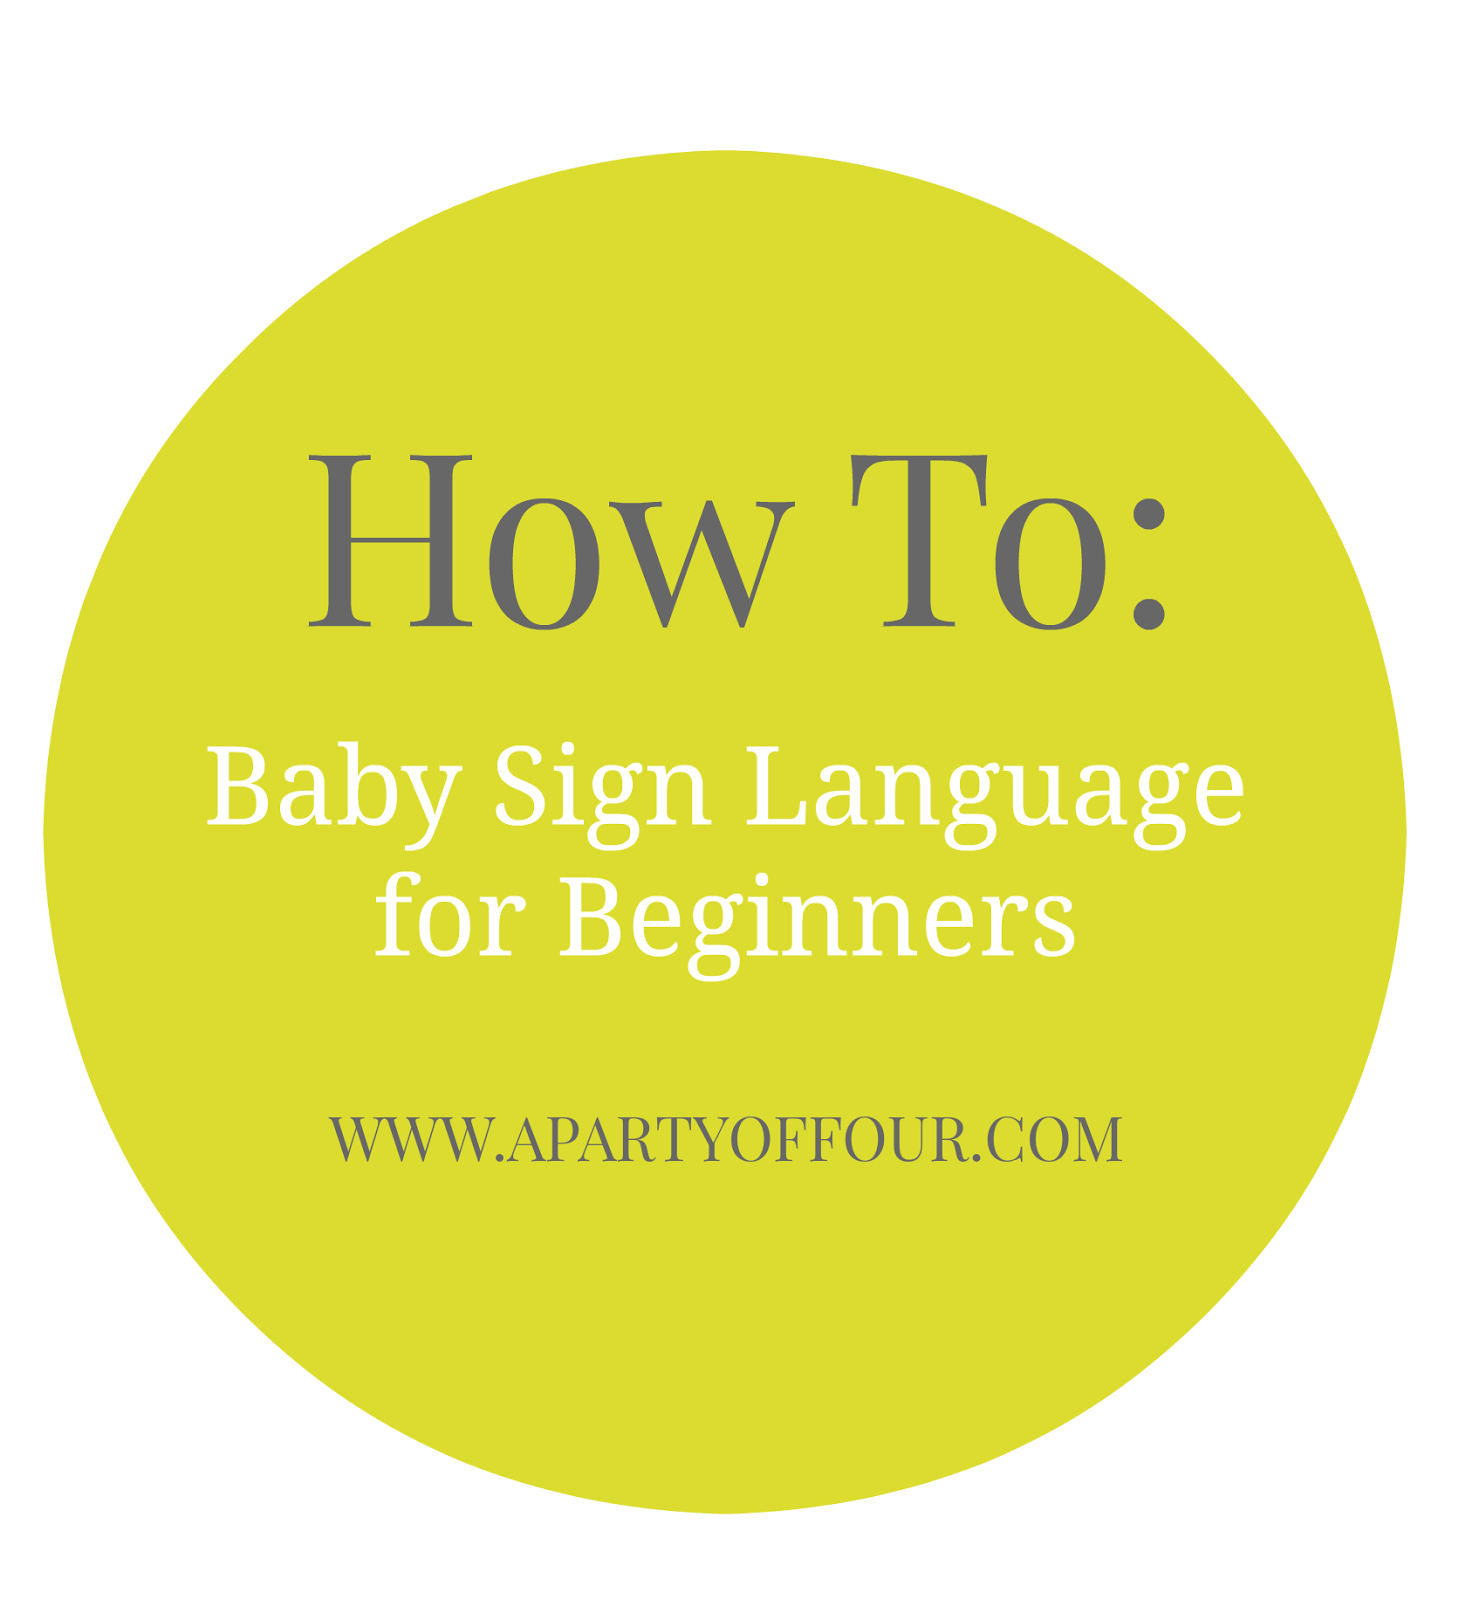 How To Baby Sign Language